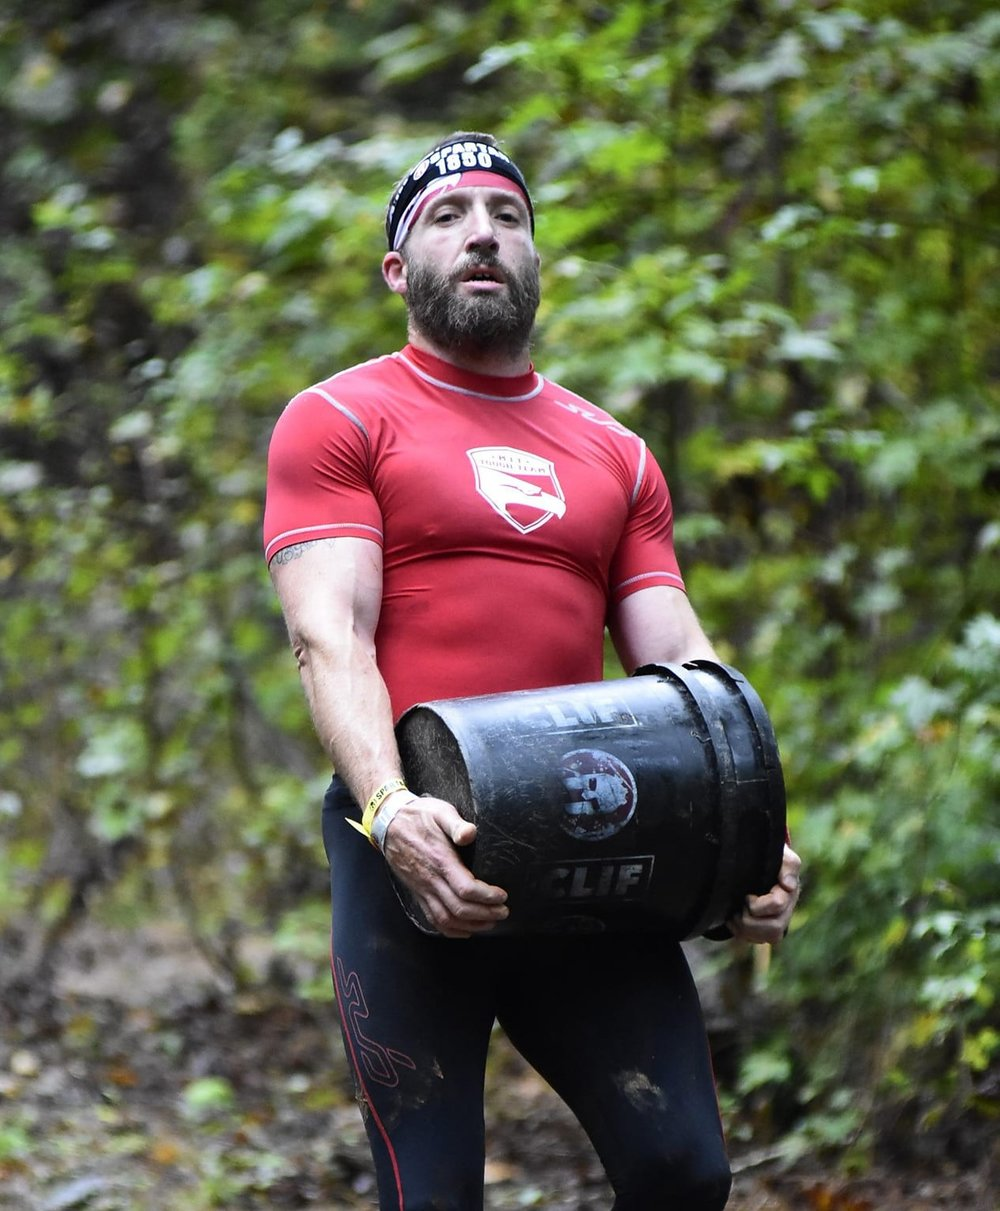 """Jason Deem - """"Over the years I've always considered myself a good athlete, however I've never really had a great grasp on my nutrition, or how it can impact my performance. Over the summer I started working with Jessie, and immediately I was impressed with her knowledge, and approachable demeanor. She has been a great resource to me for any questions I've had, and when I've followed her guidance I've certainly felt and noticed a performance boost! A great person, with a great approach towards healthy living. I 100% recommend her services!"""""""